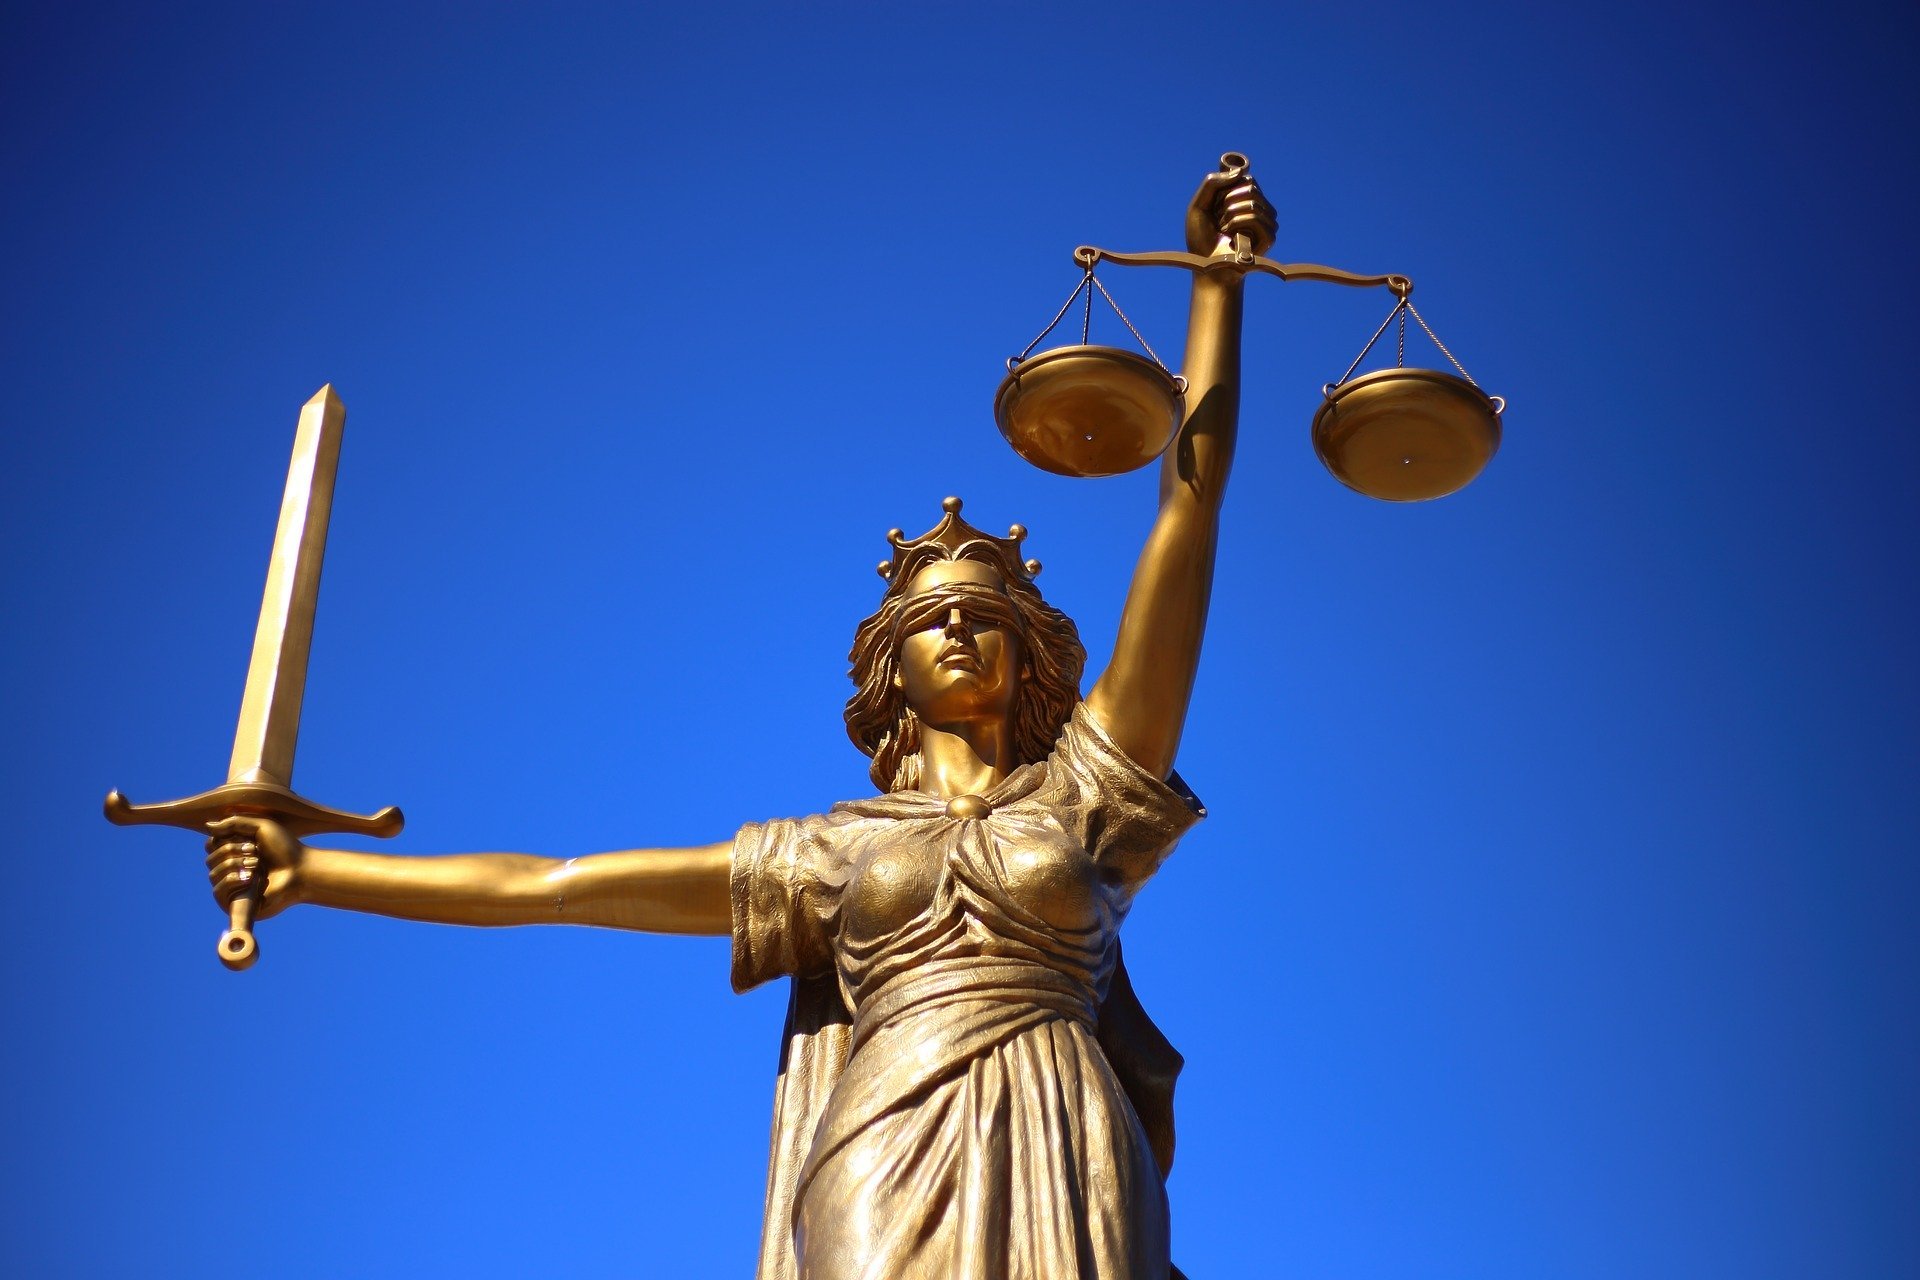 A gold statue of lady justice, a woman holding a sword and scales, in front of a blue background